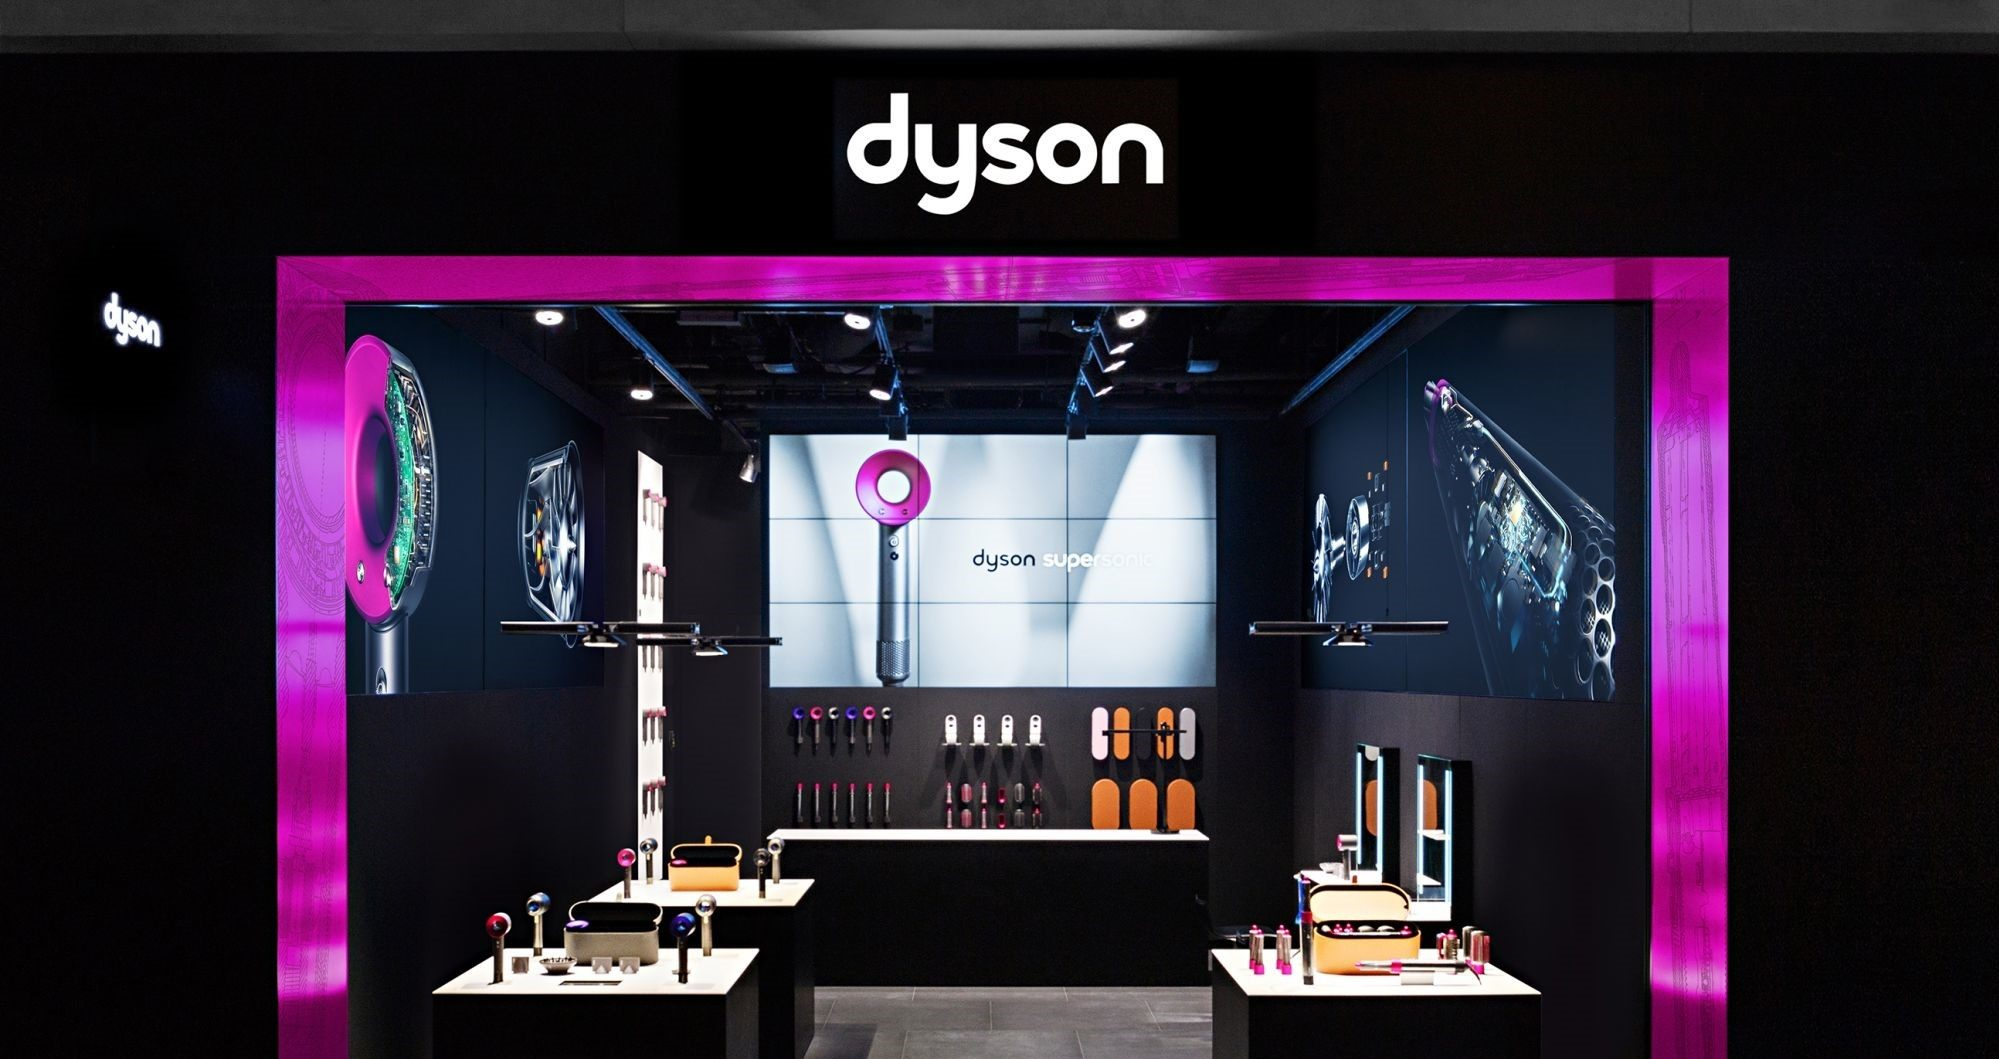 Dyson to develop 15,000 ventilators for COVID-19 patients